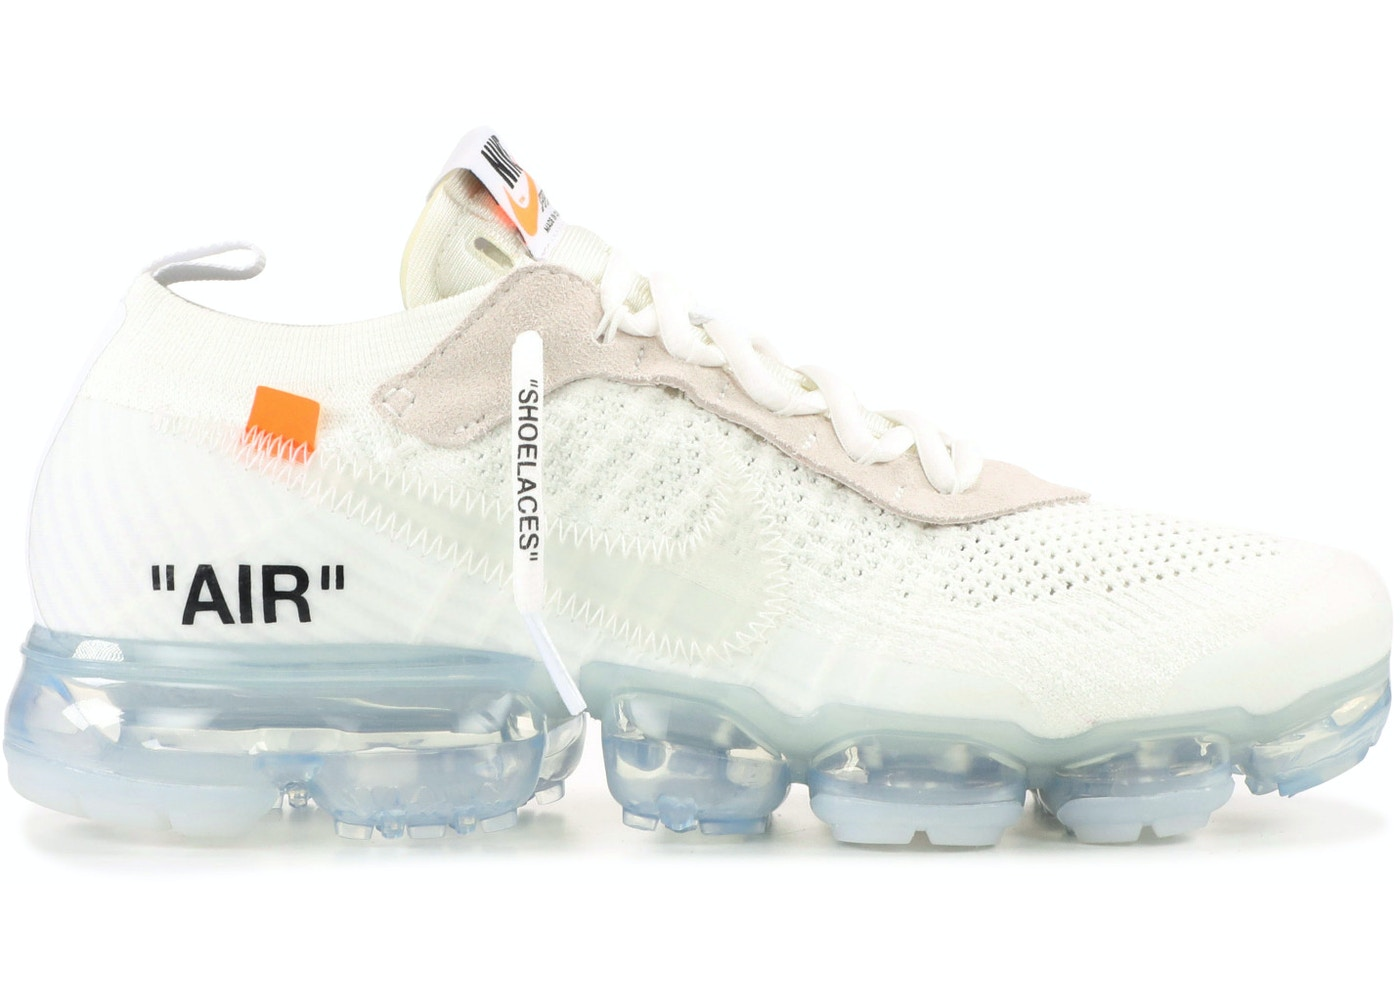 1a3853e9e8 Air Vapormax Off White 2018 - AA3831-100